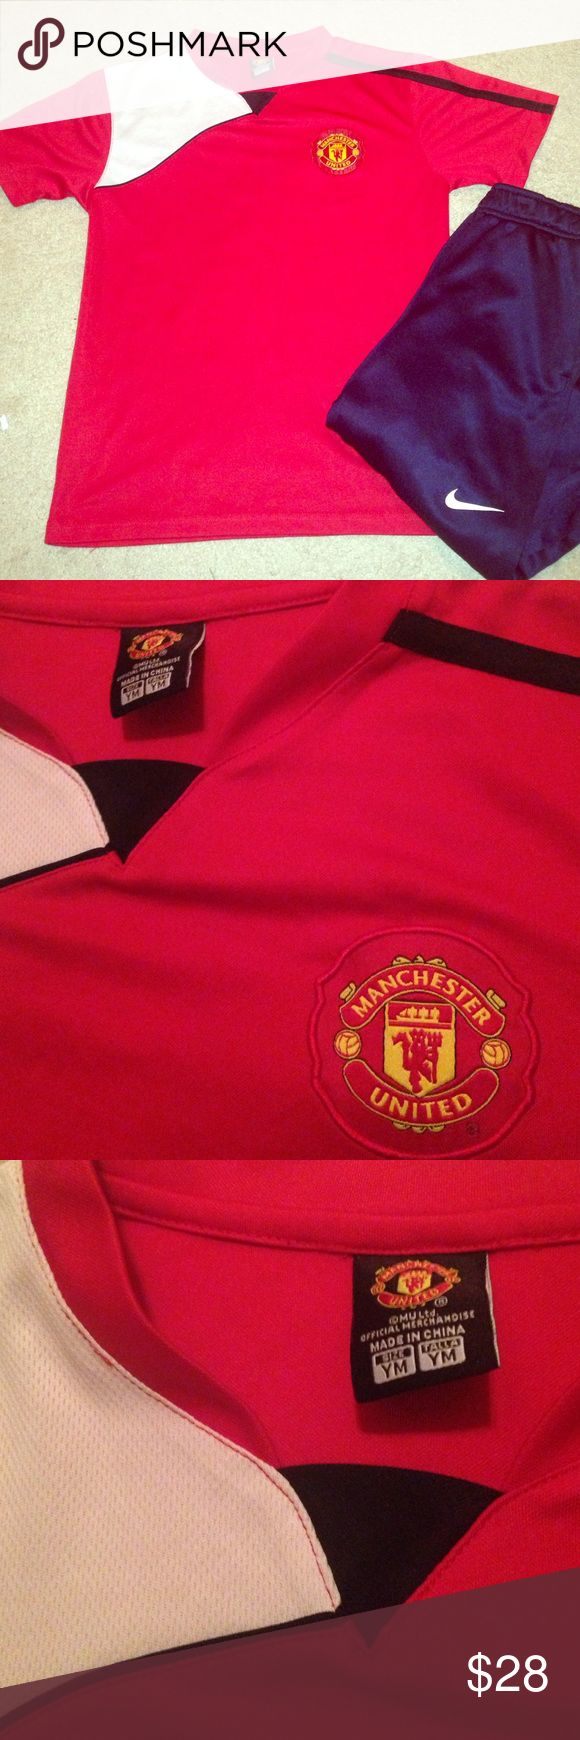 Manchester United youth medium jersey Worn once. Polyester. Official merchandise Shirts & Tops Tees - Short Sleeve